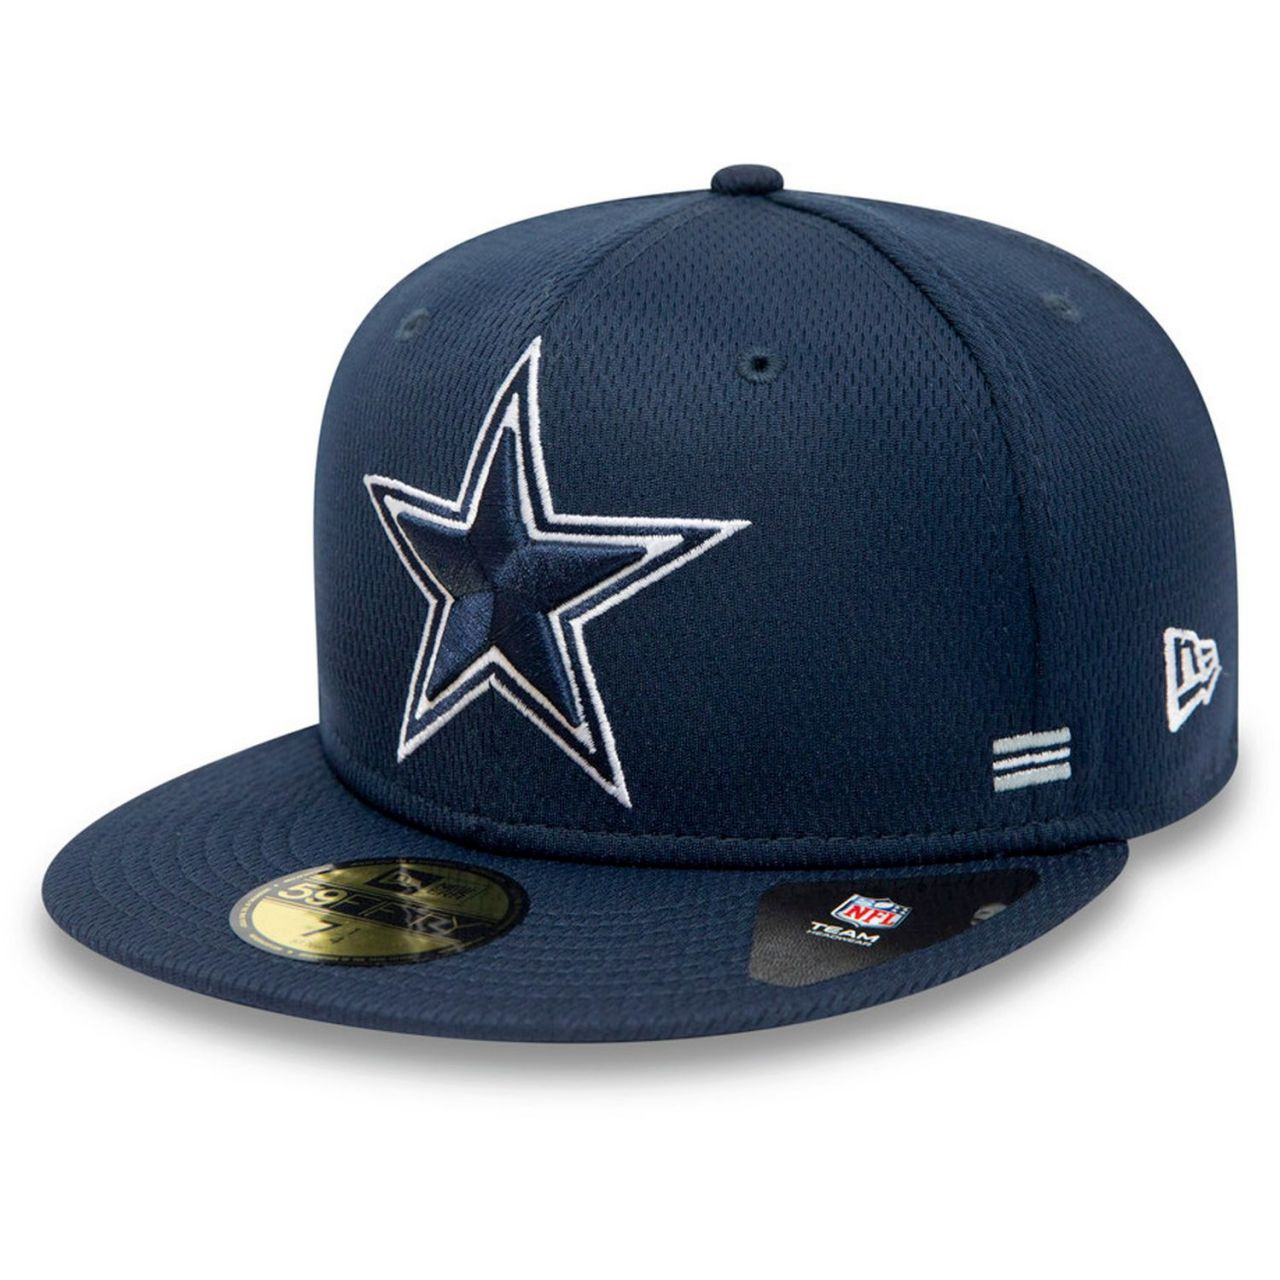 amfoo - New Era 59Fifty Fitted Cap - HOMETOWN Dallas Cowboys